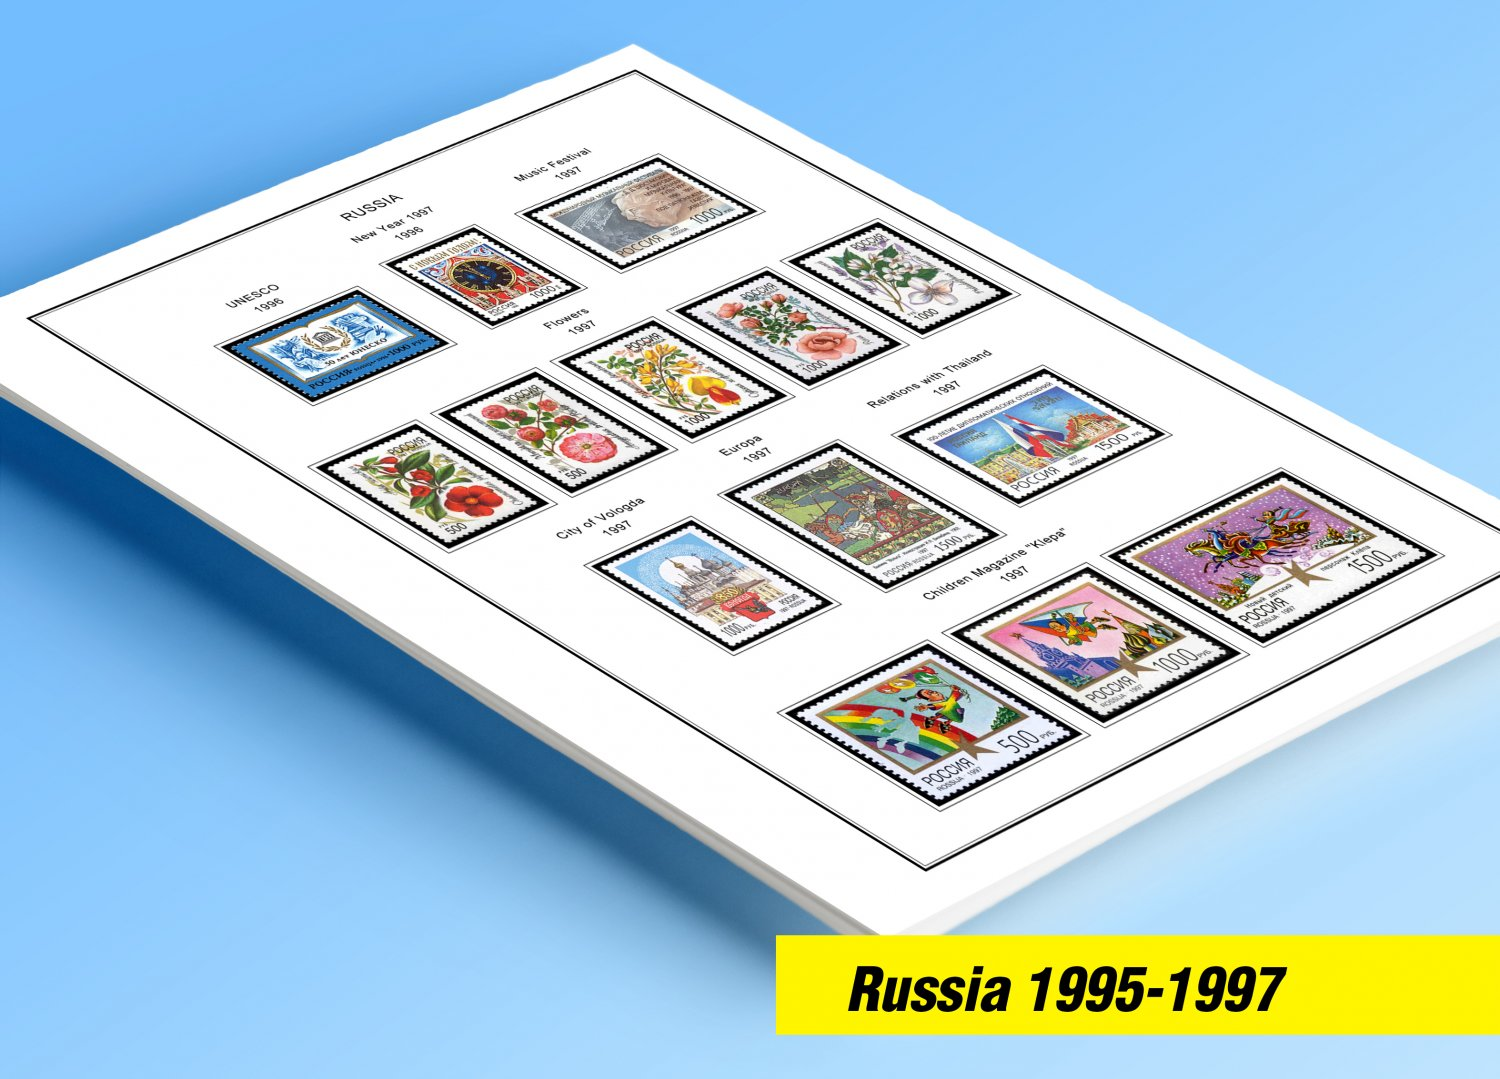 COLOR PRINTED RUSSIA 1995-1997 STAMP ALBUM PAGES (58 illustrated pages)